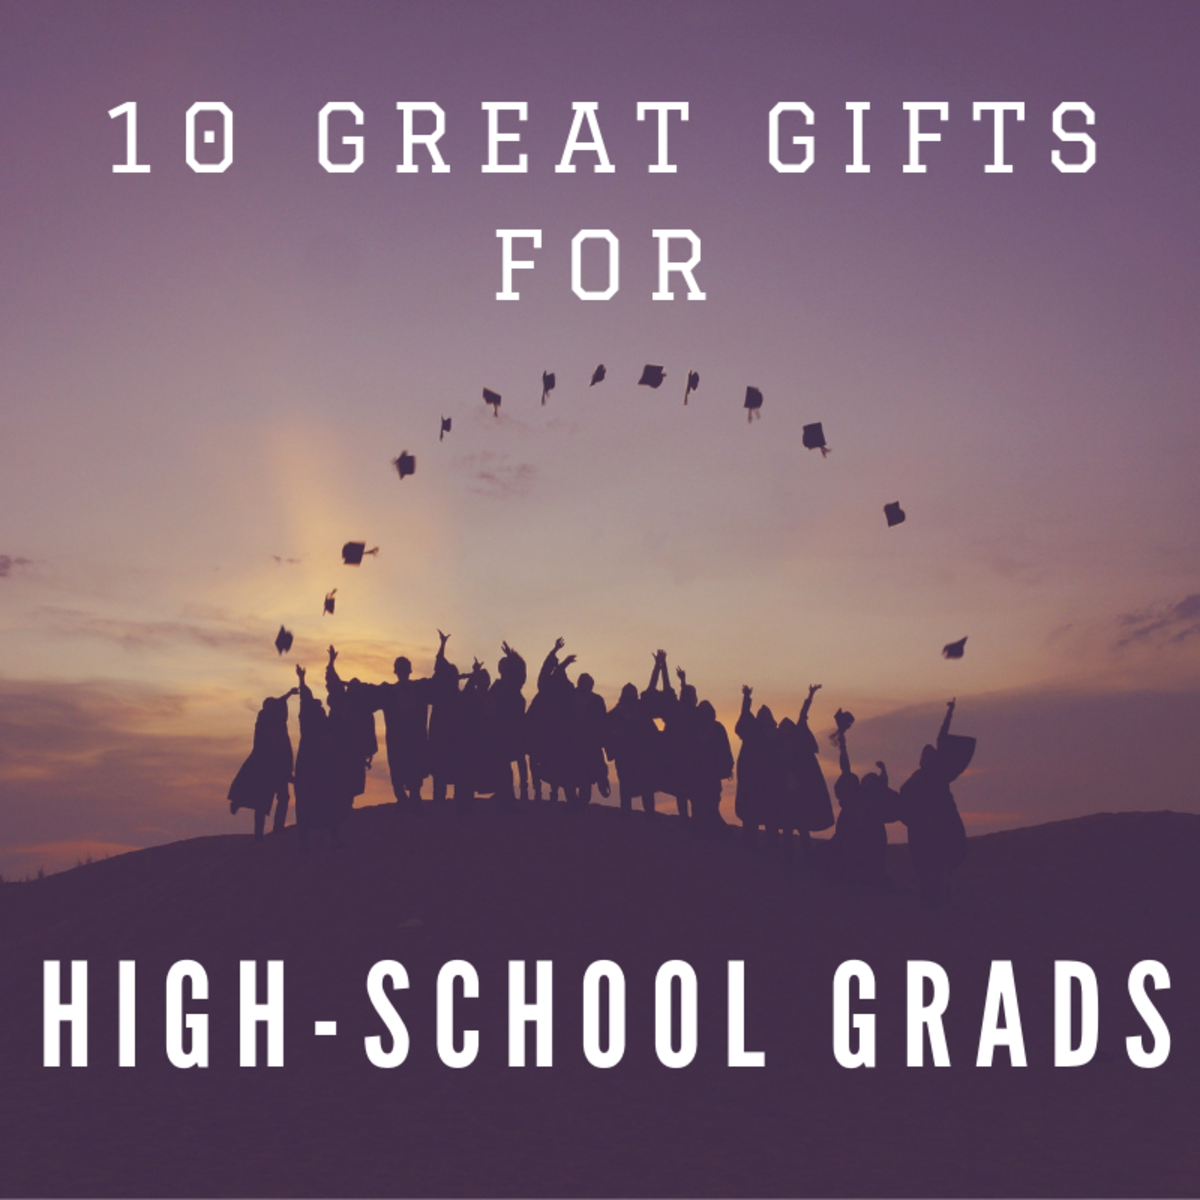 10 Unique and Creative Gift Ideas for High-School Graduation